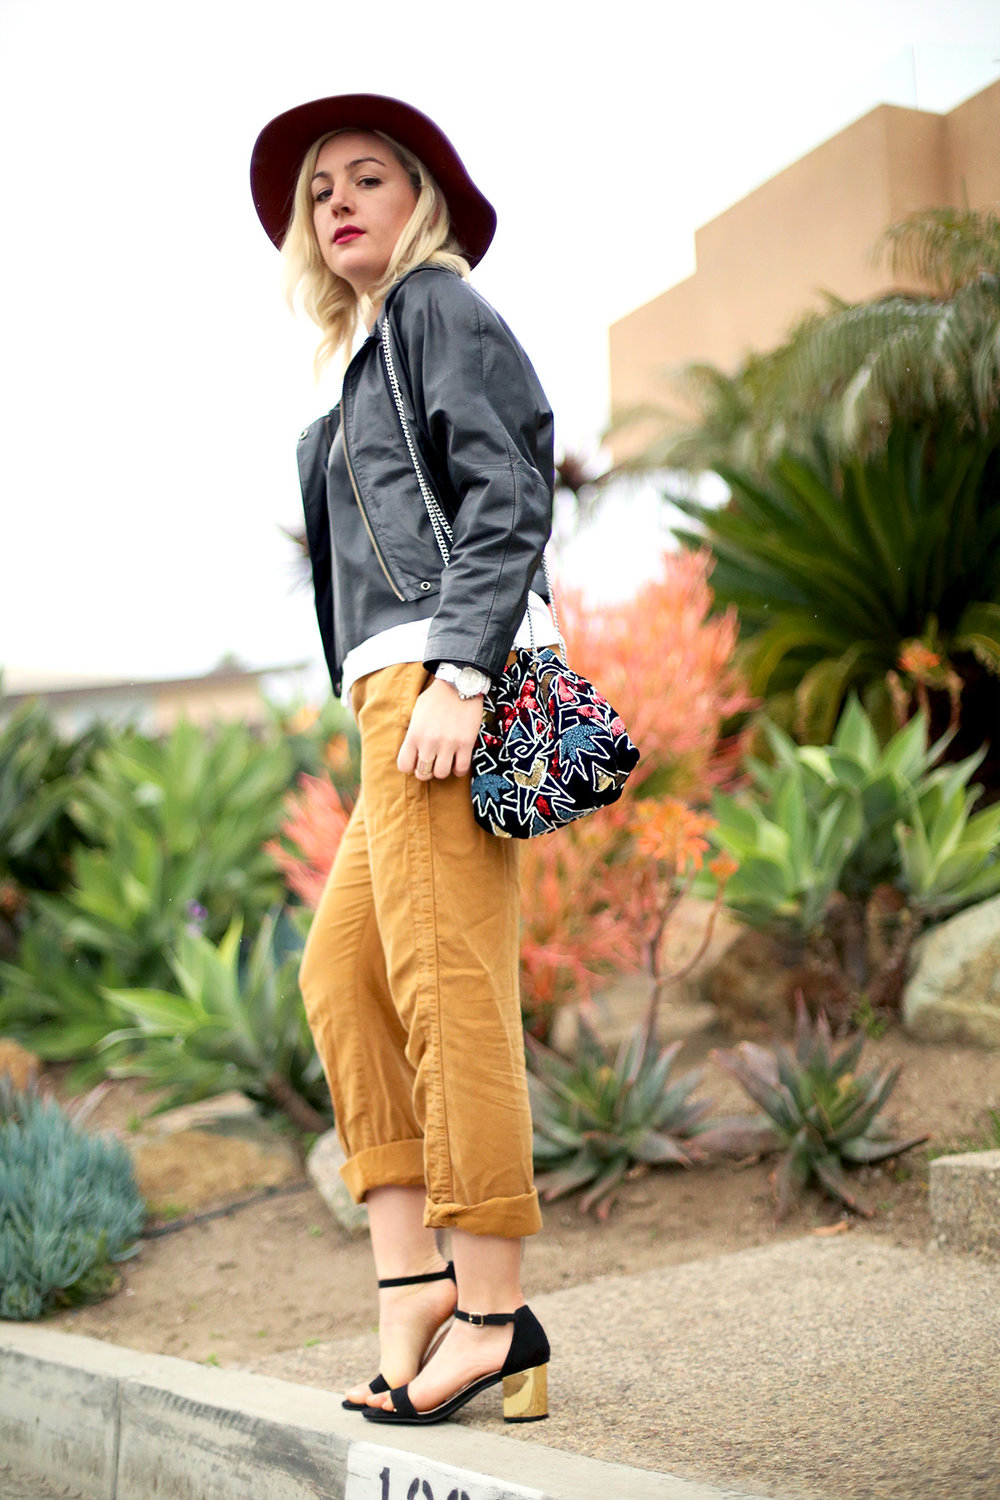 Asos-pants-Zara-bag-Faith-in-Style-1.jpg